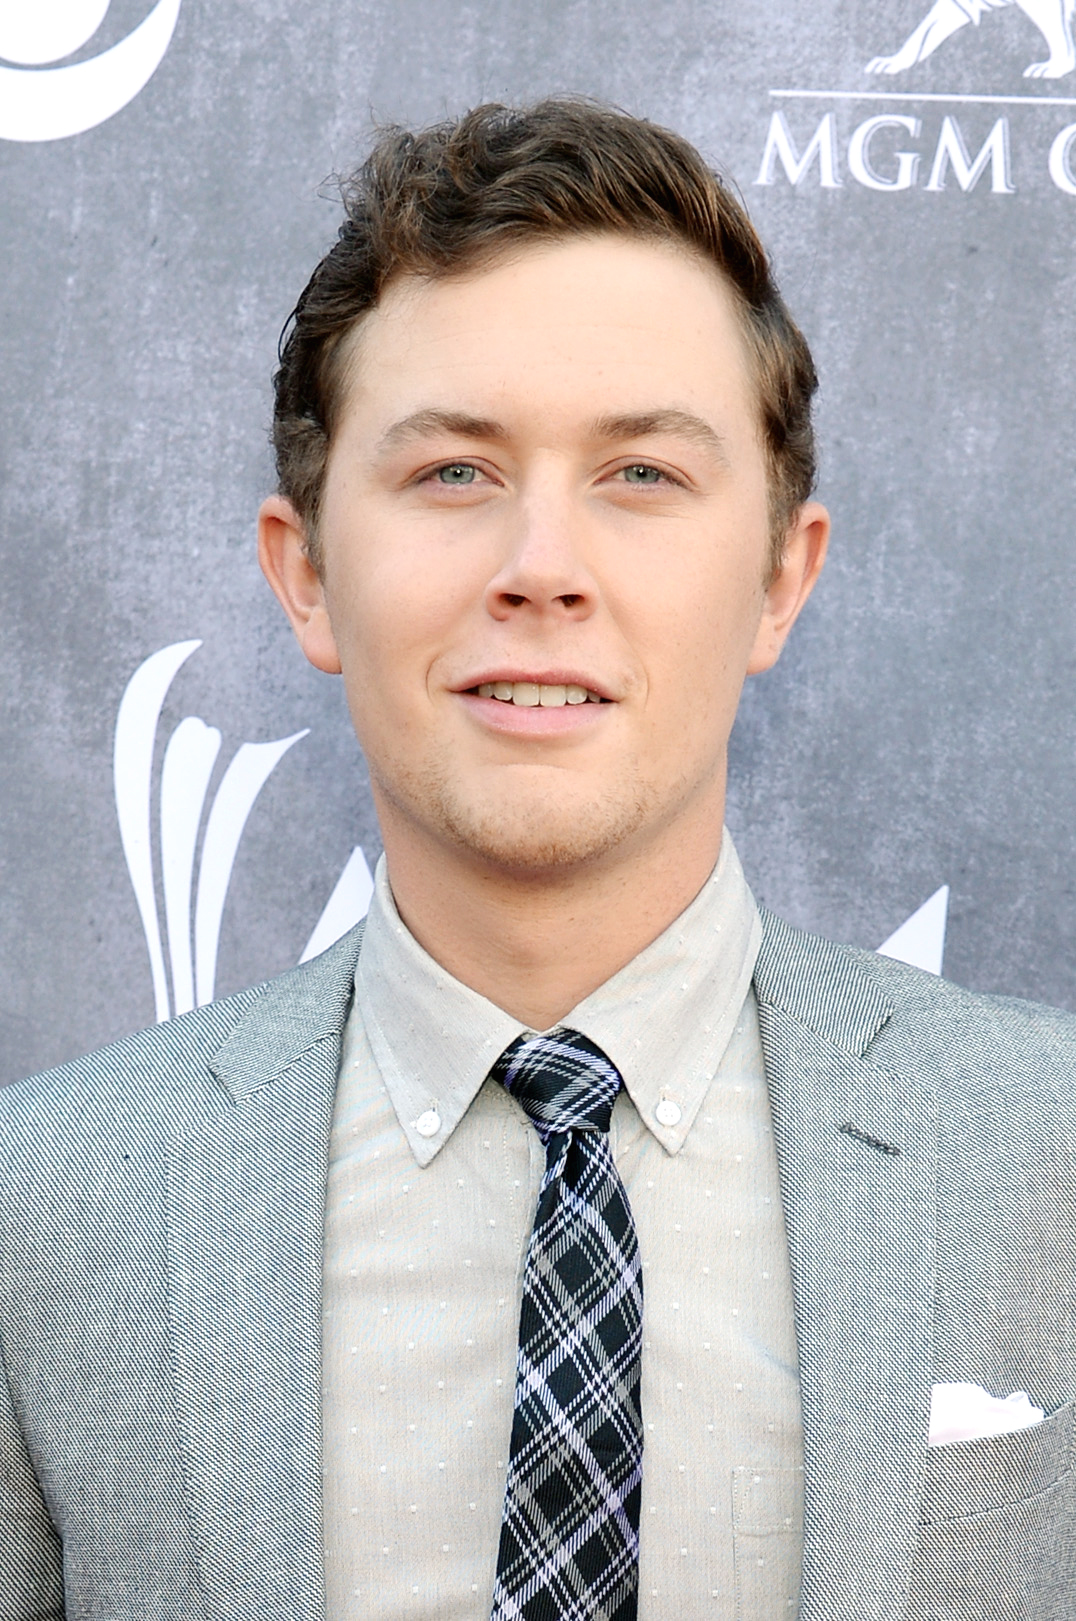 Scotty McCreery attends the 49th Annual Academy of Country Music Awards at the MGM Grand Garden Arena on April 6, 2014 in Las Vegas.